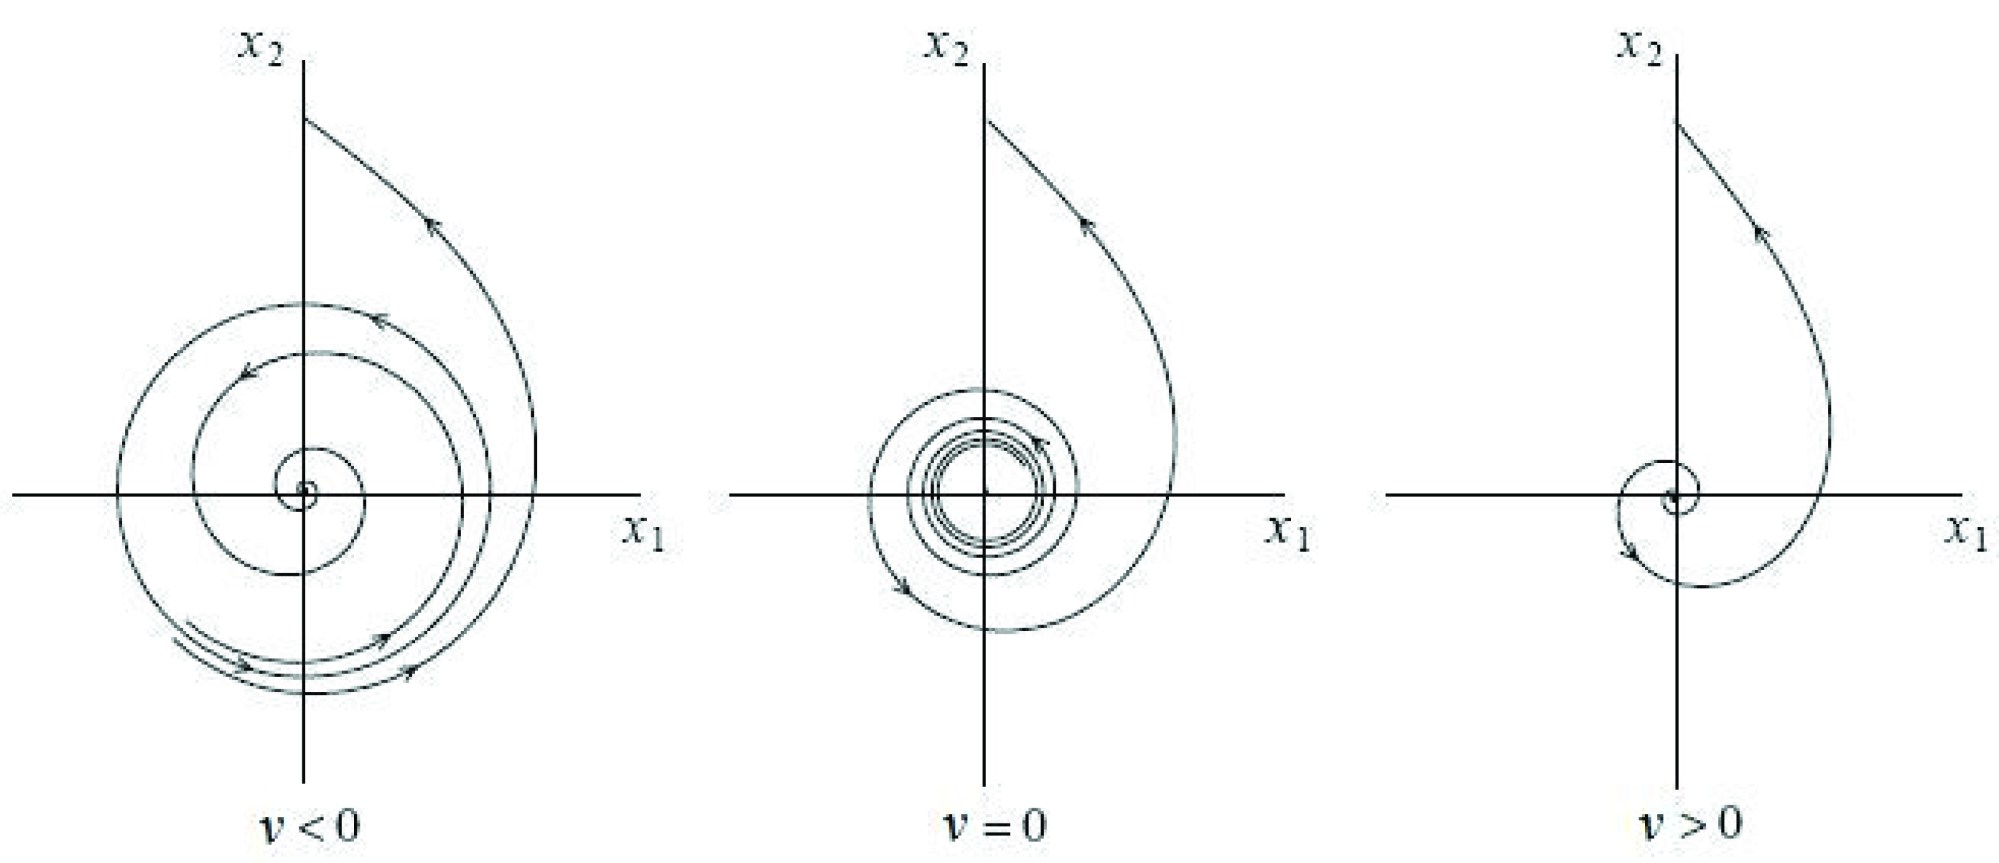 hight resolution of figure 7 diagram for subcritical hopf bifurcation